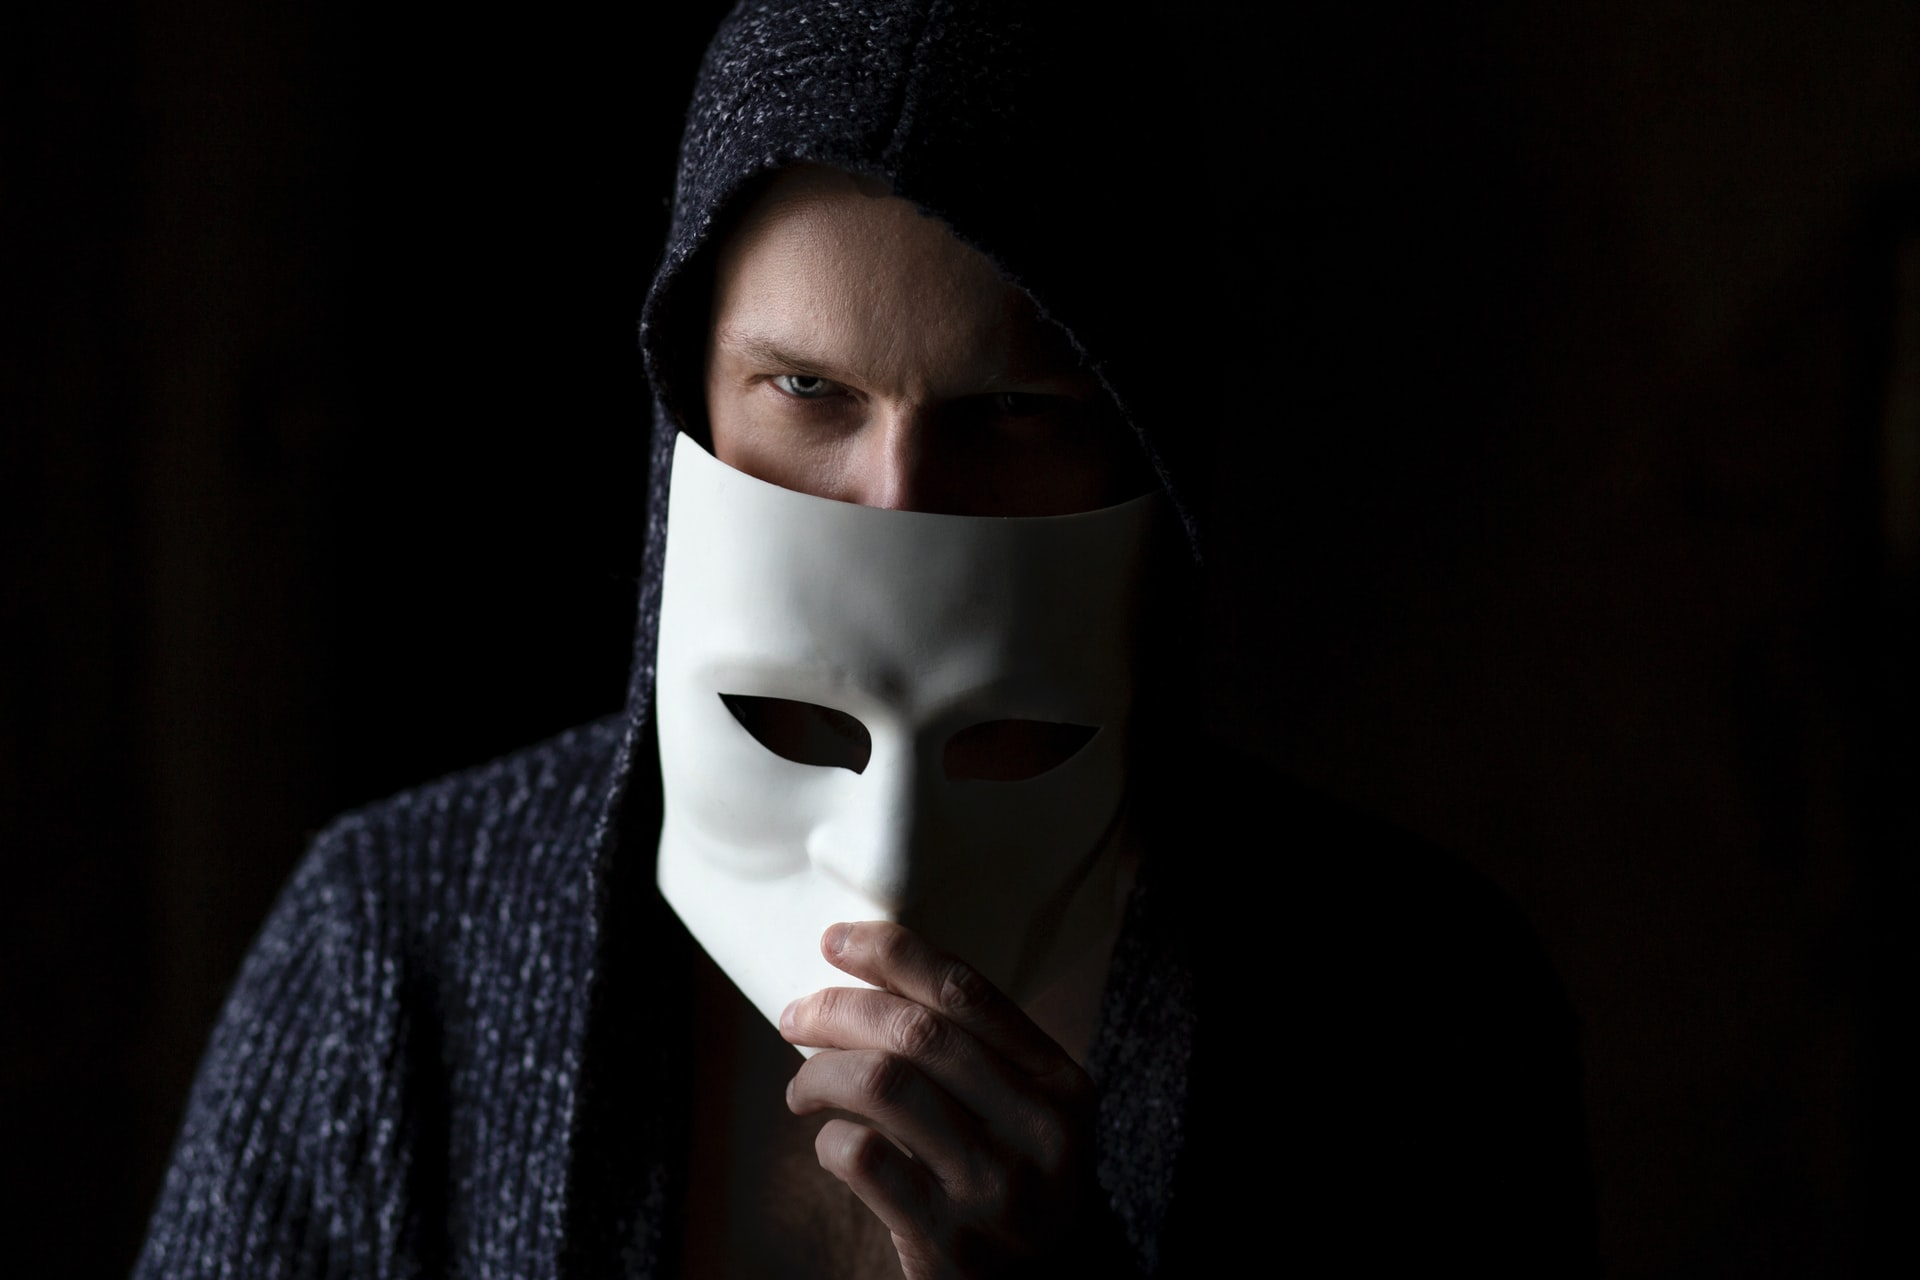 The Shadow Self: Learn to Love Your Dark Side